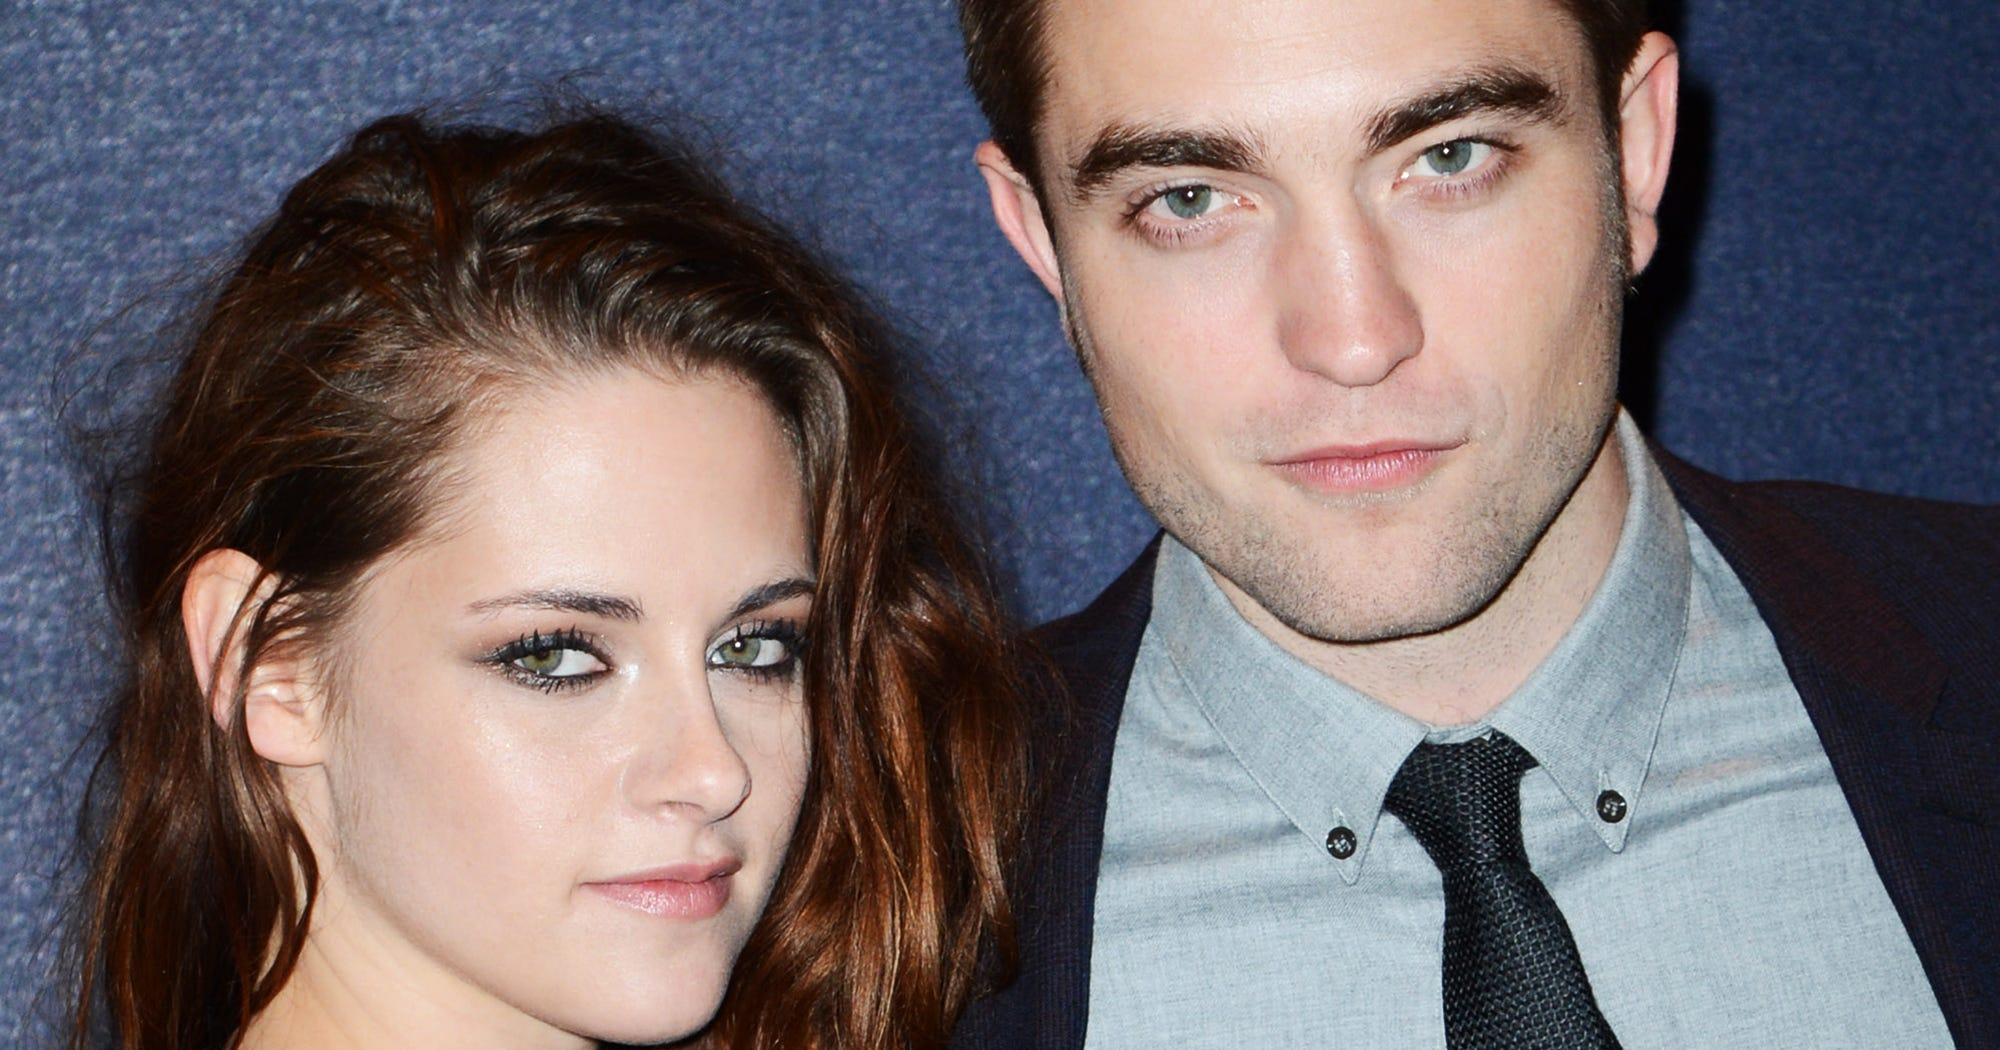 Is kristen stewart dating a girl